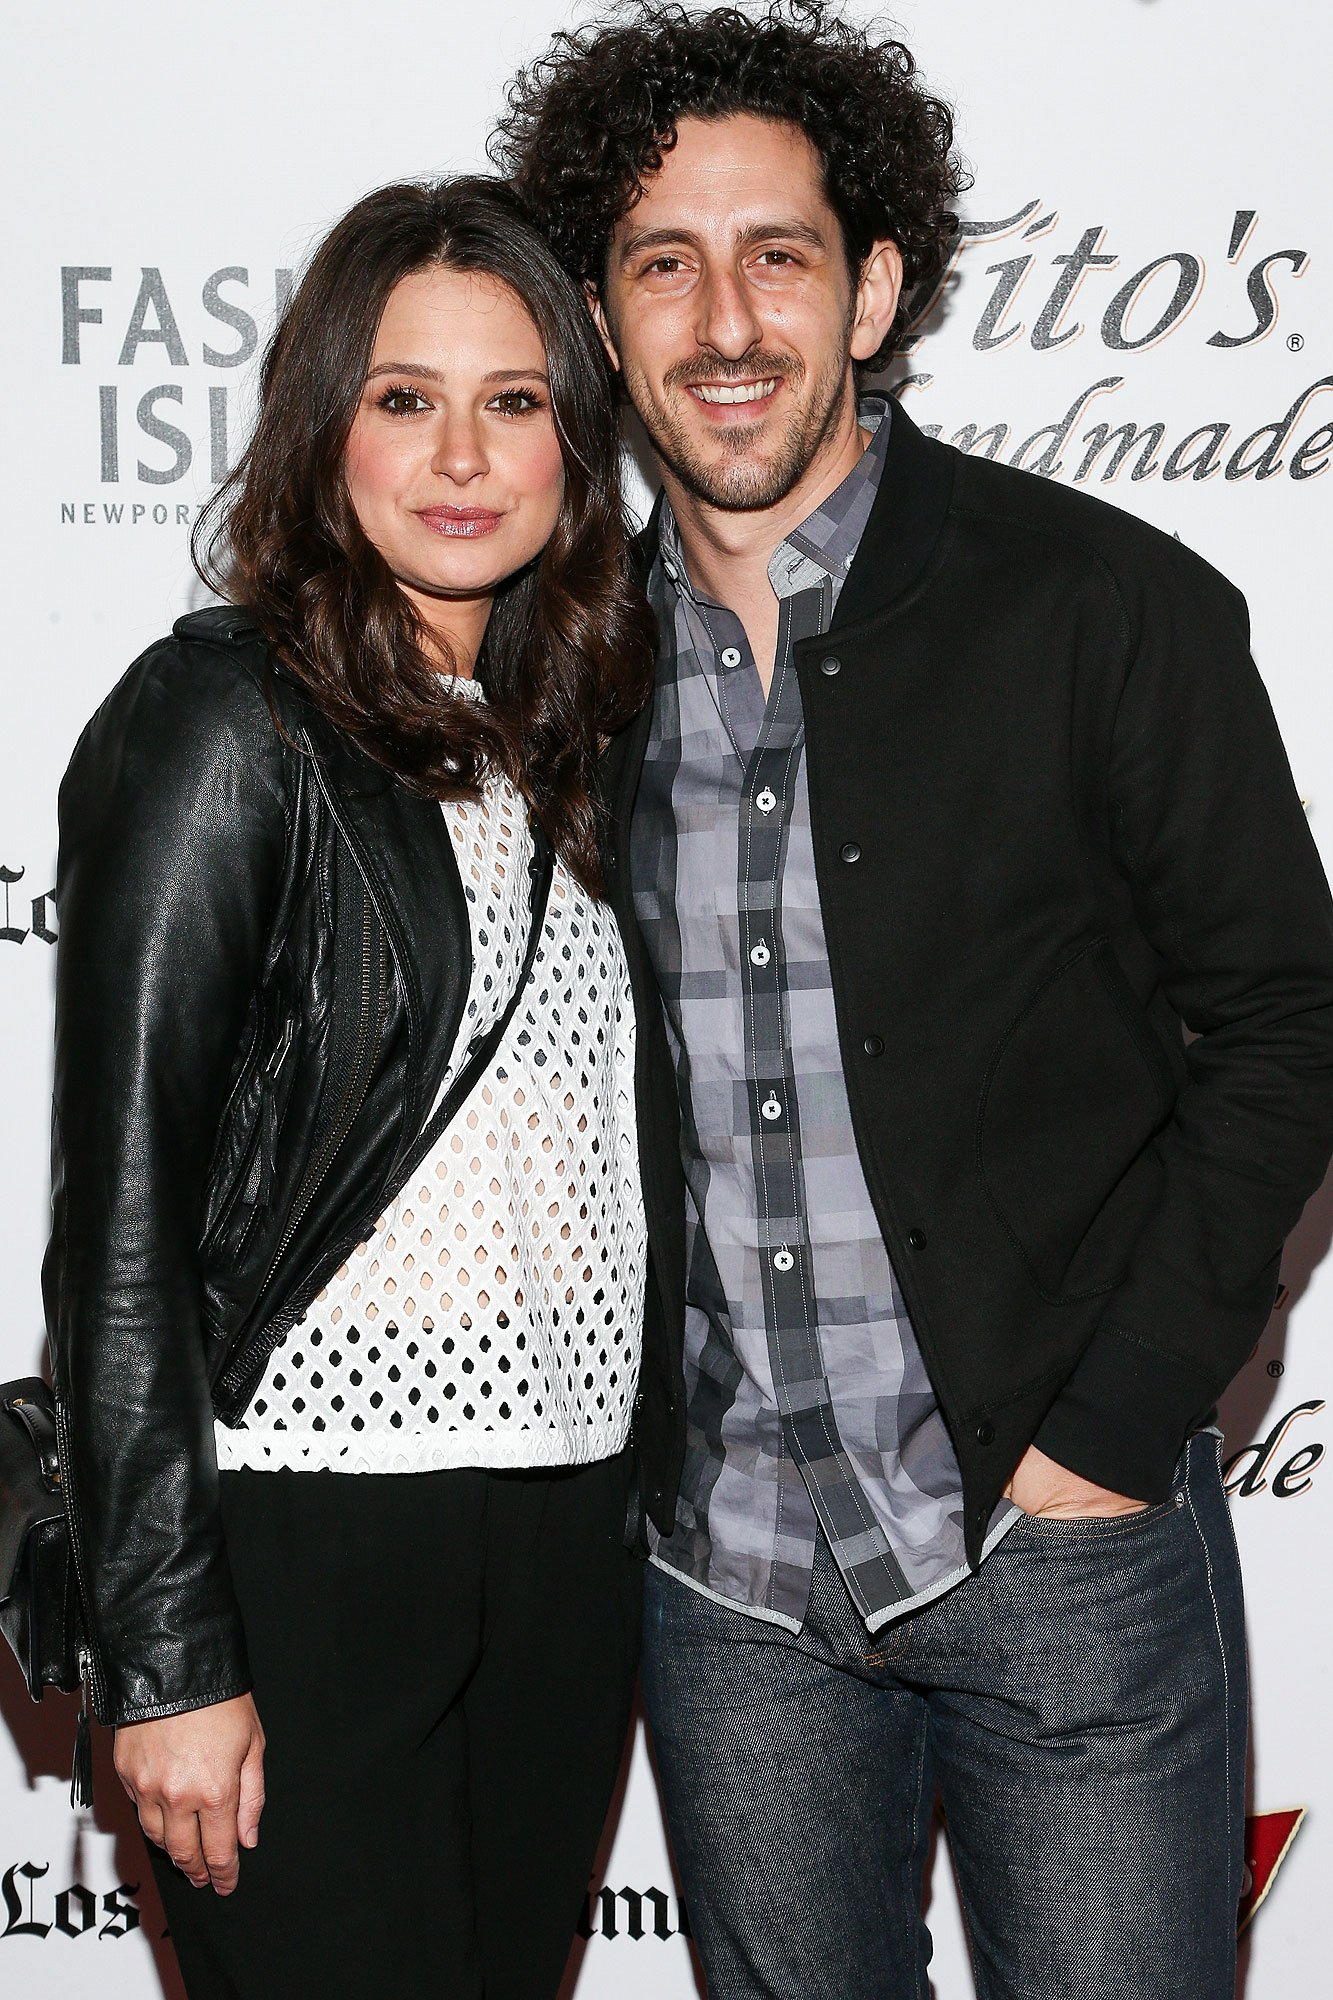 Scandal's Katie Lowes and Husband Adam Shapiro Will Costar in